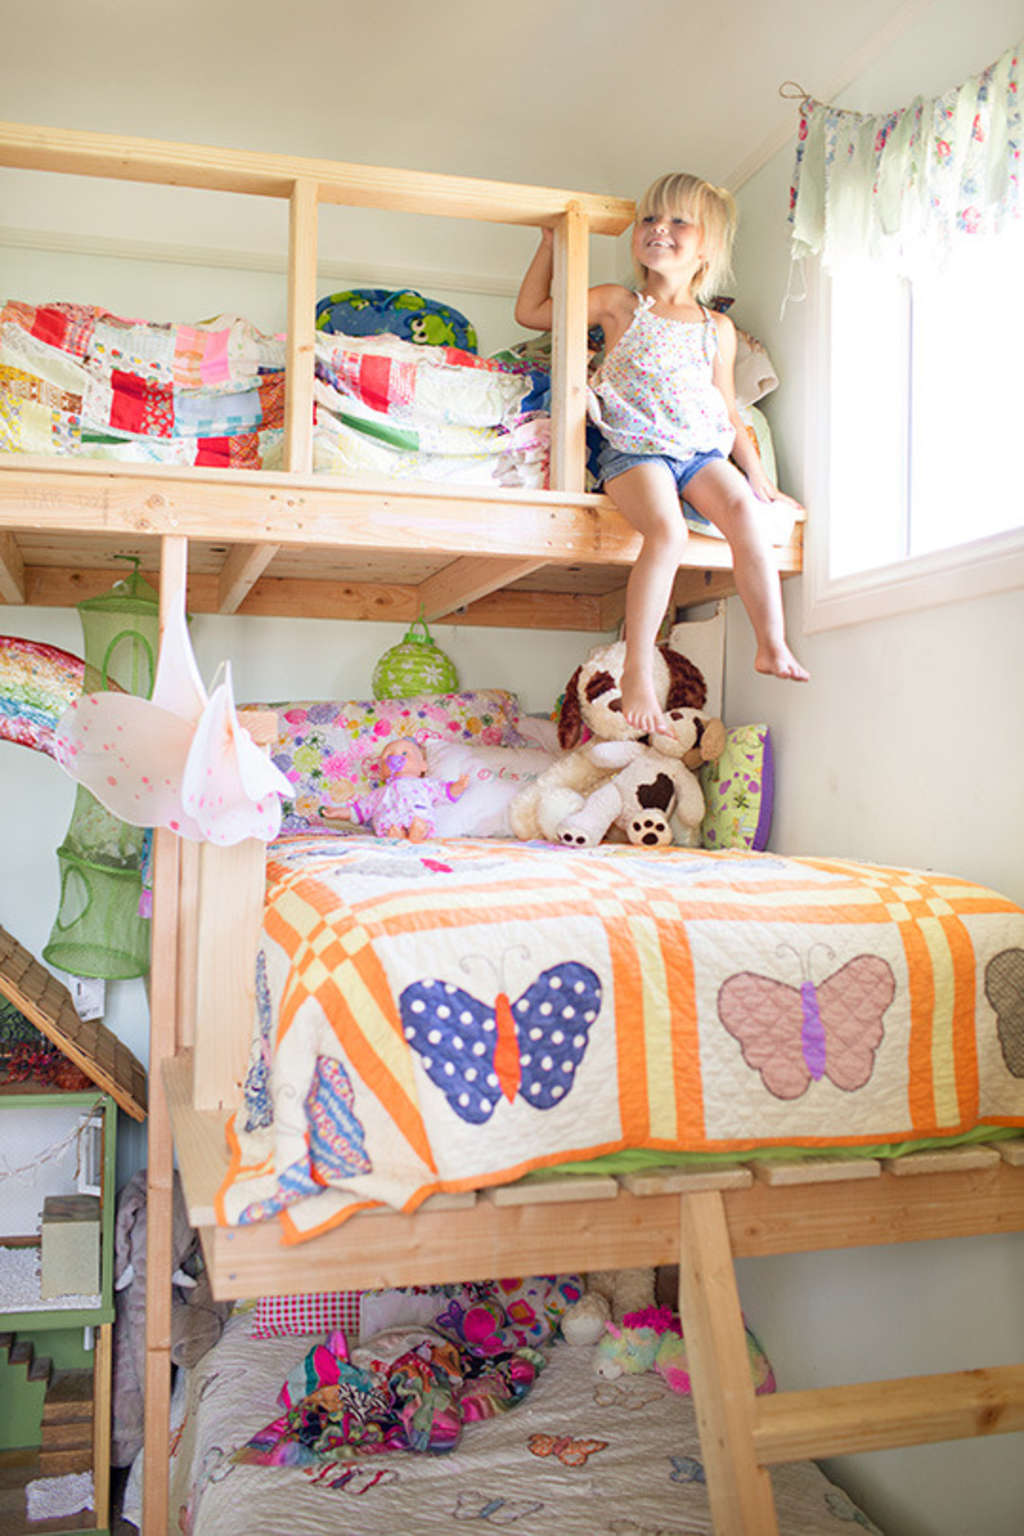 Real Life Shared Rooms for 3 Kids